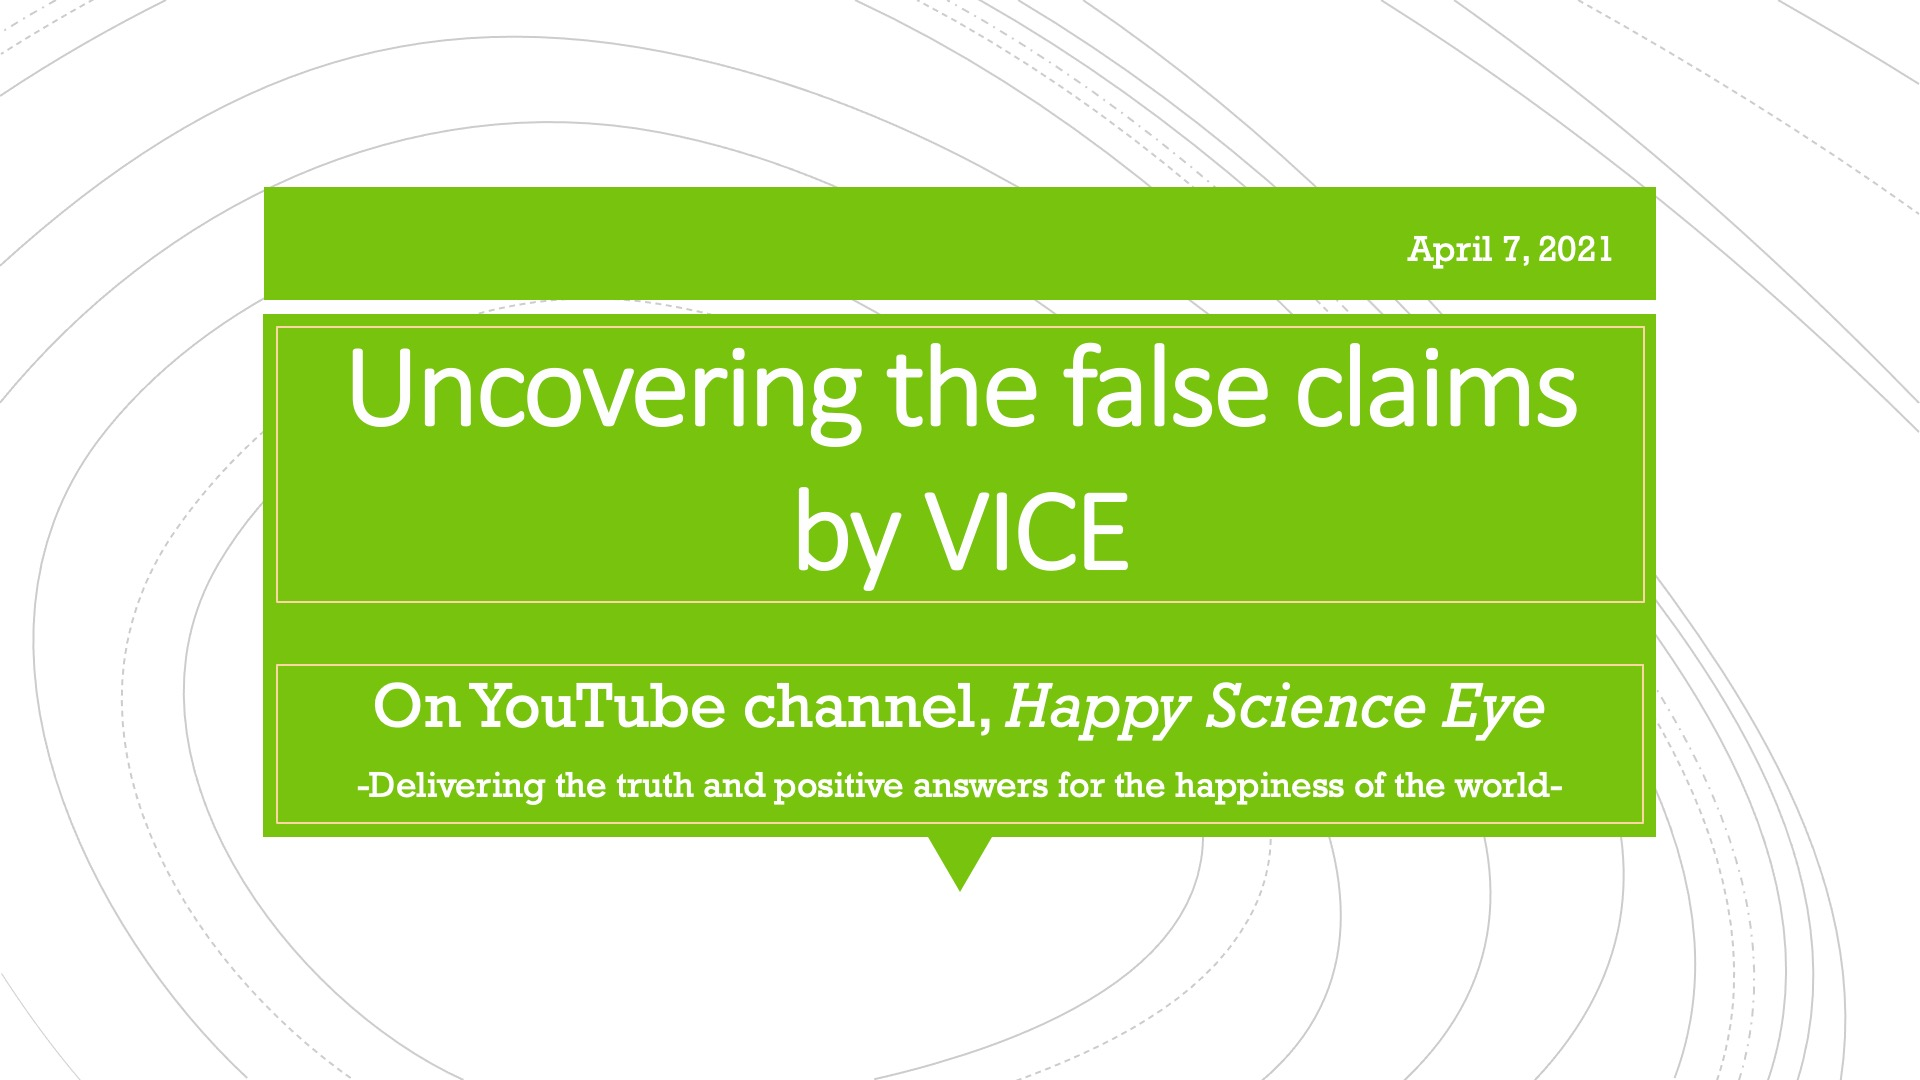 Uncovering the false claims by VICE-Happy Science Eye, A New channel on YouTube